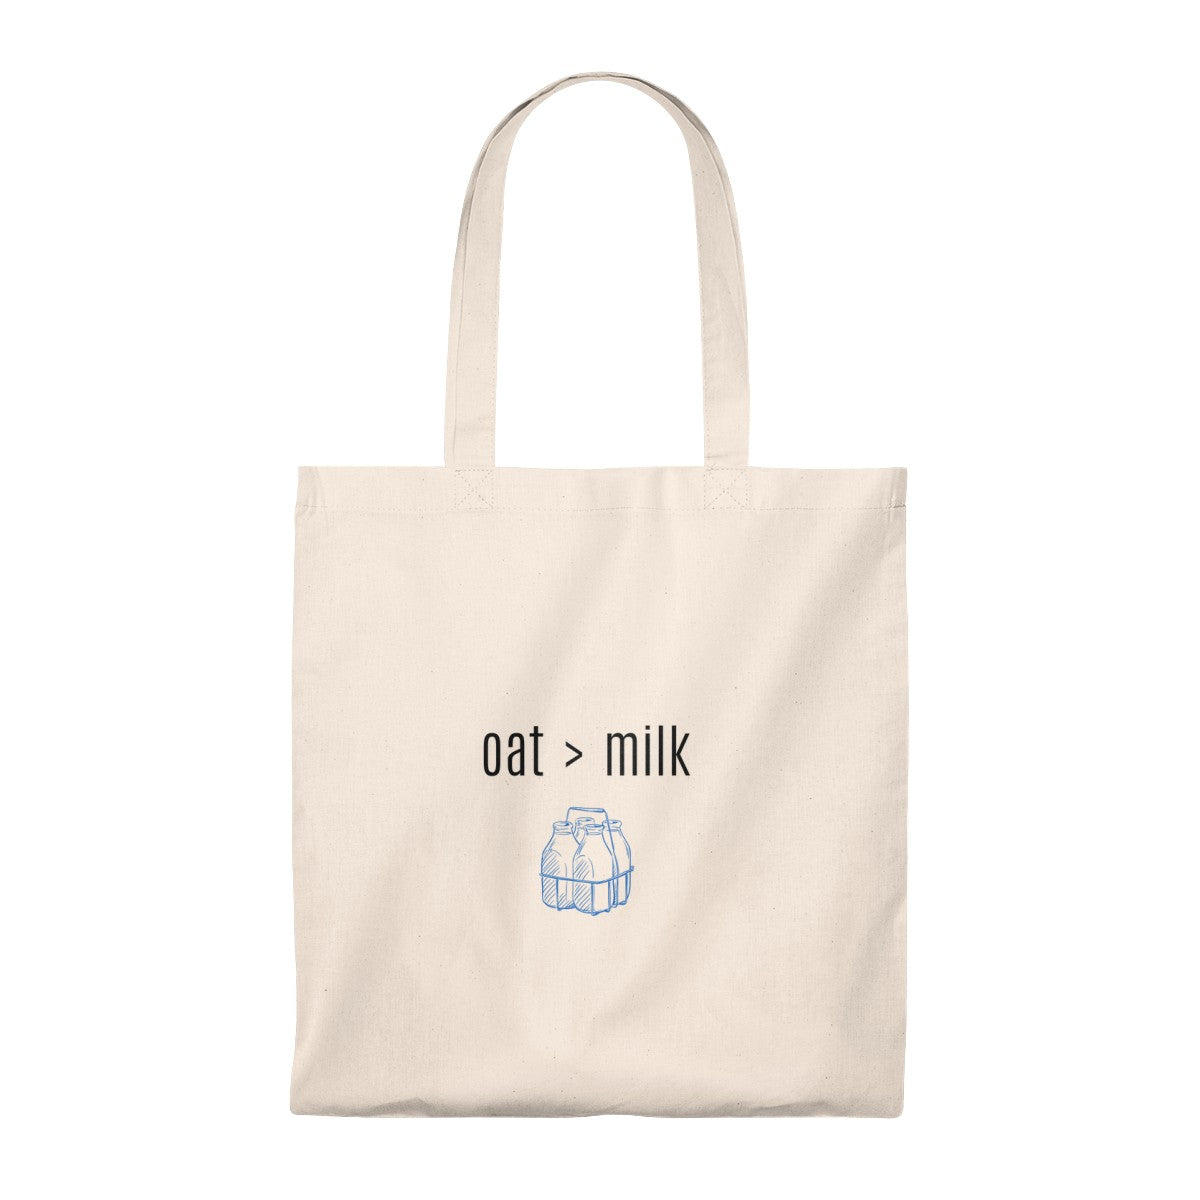 Oat > Milk Tote Bag